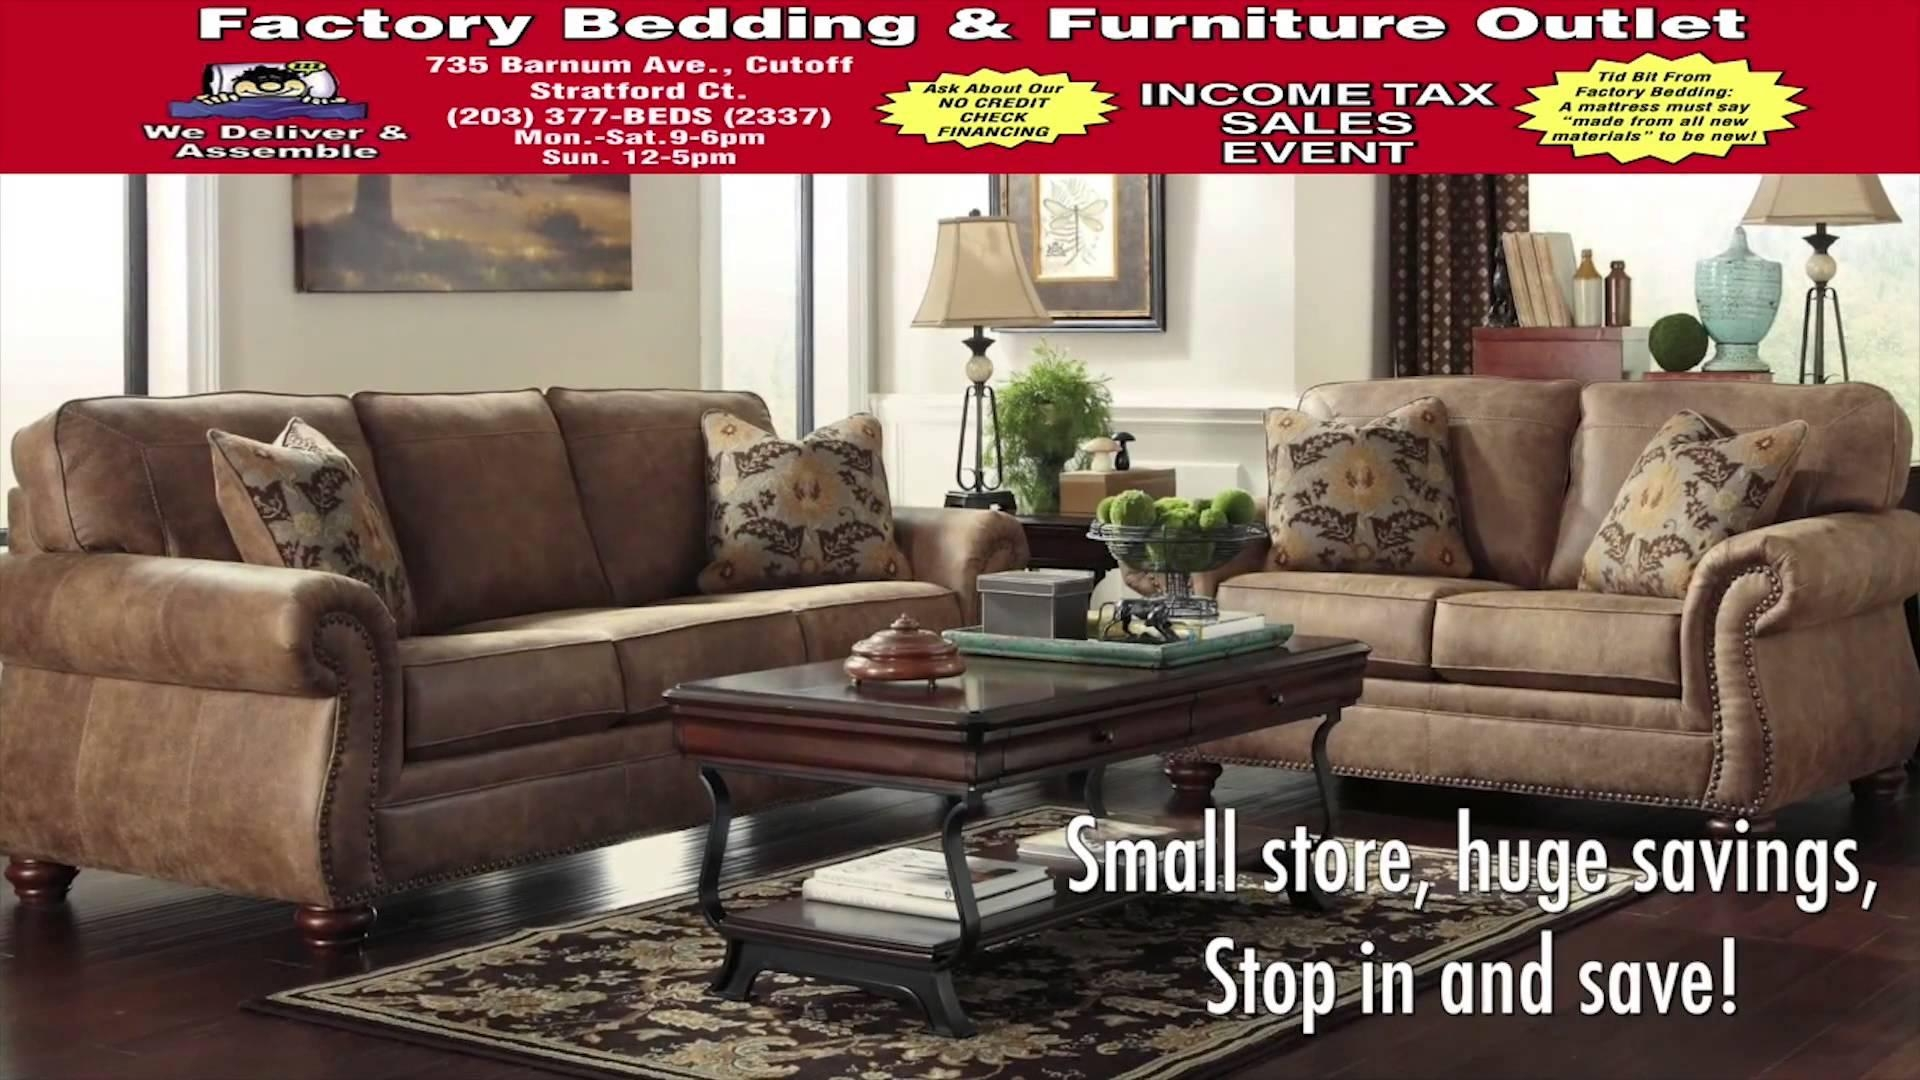 Factory Bedding And Furniture Outlet Stratford, Ct – Youtube With Regard To Stratford Sofas (Image 2 of 20)